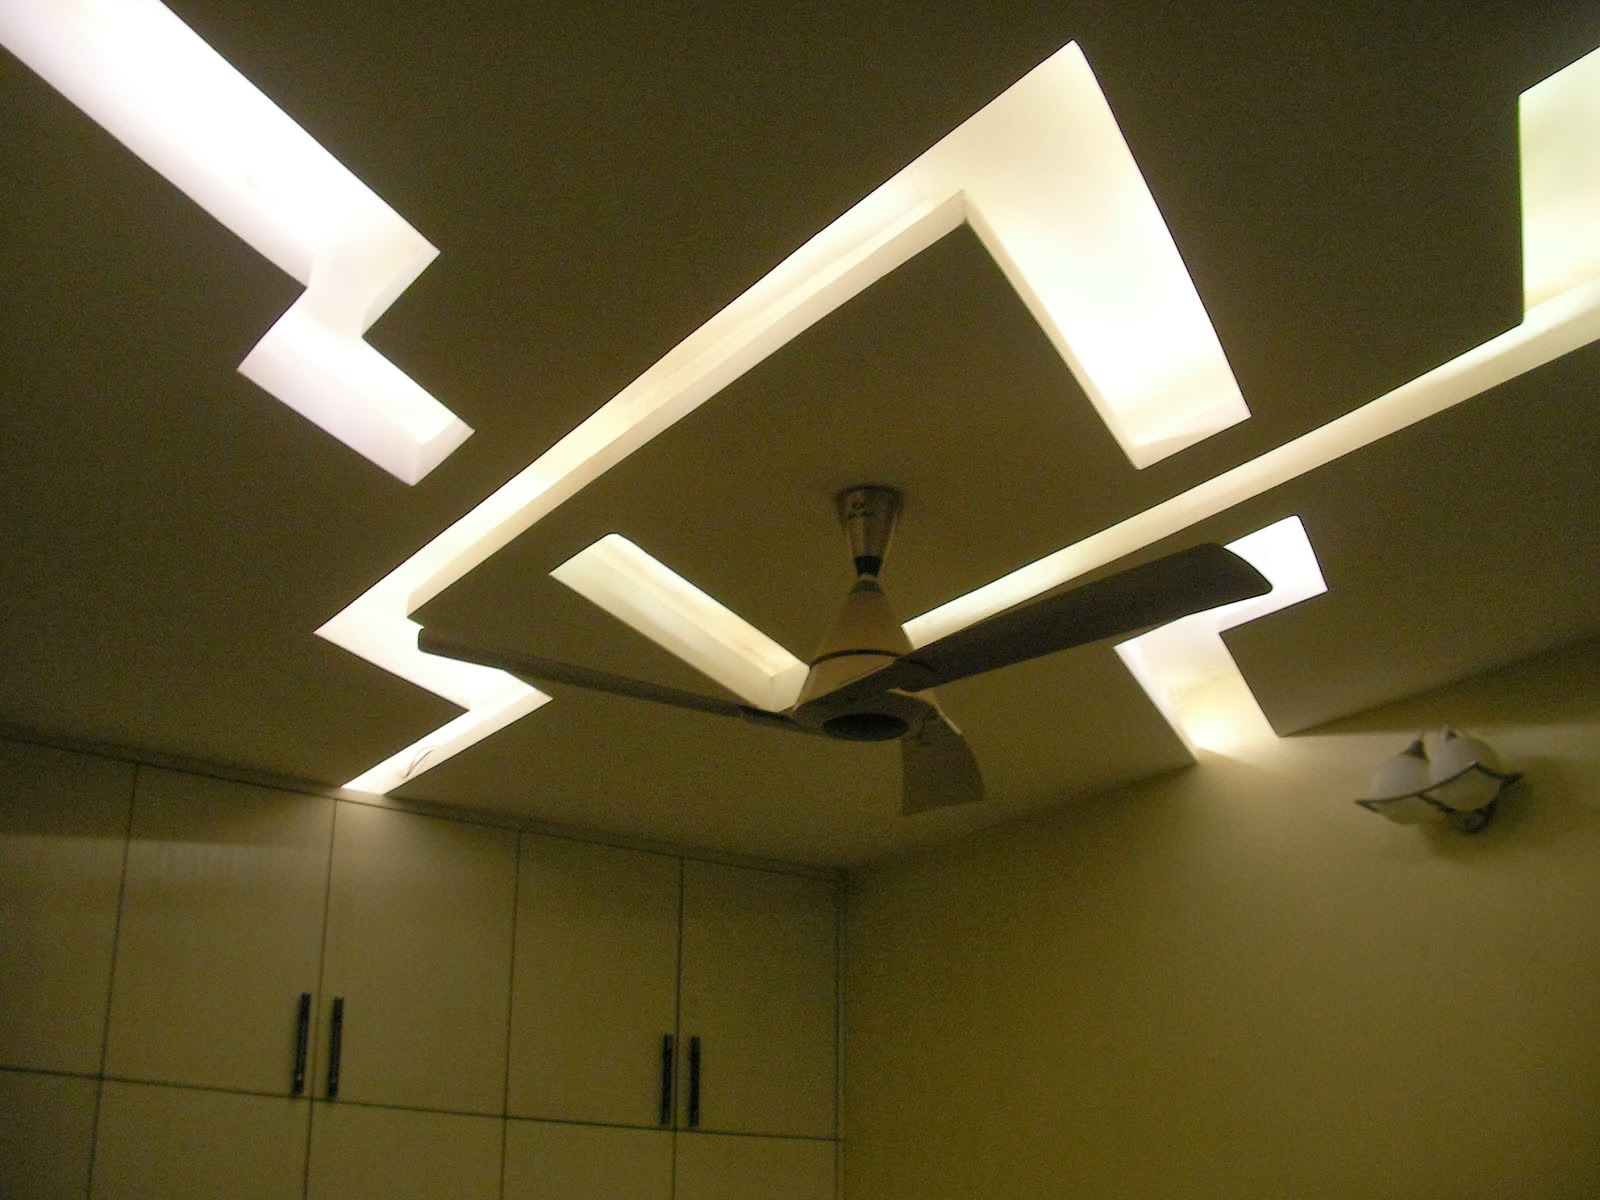 Evens construction pvt ltd types of false ceiling for for Types of ceiling designs